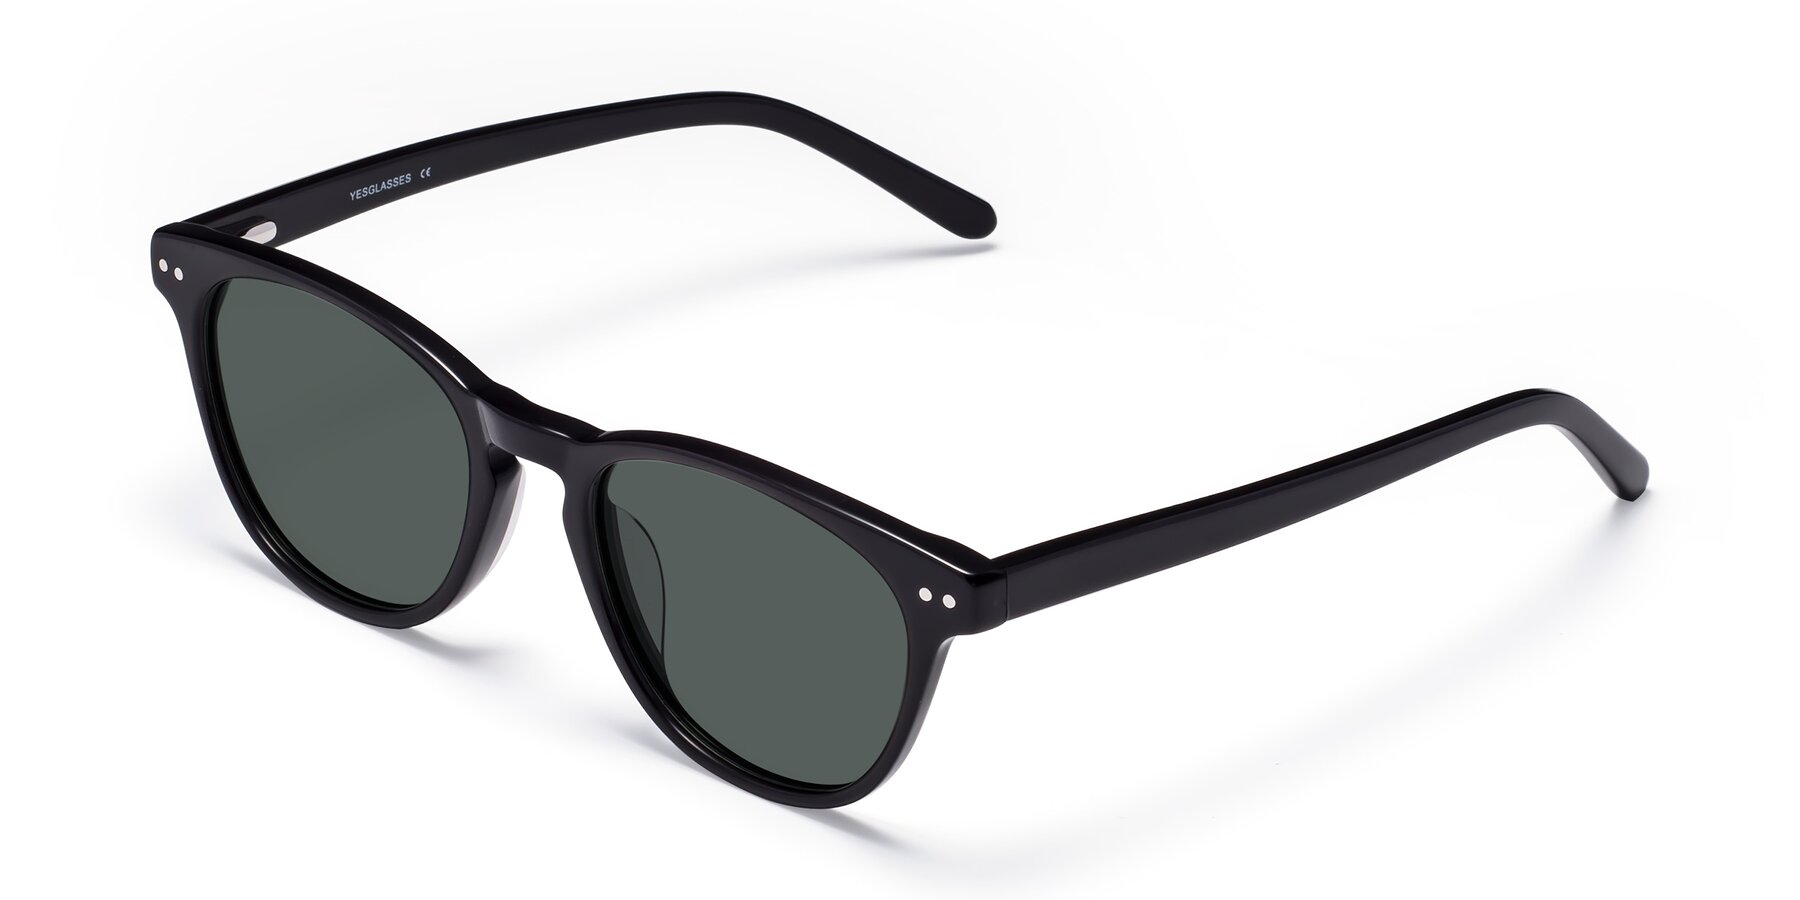 Angle of Blaze in Black with Gray Polarized Lenses